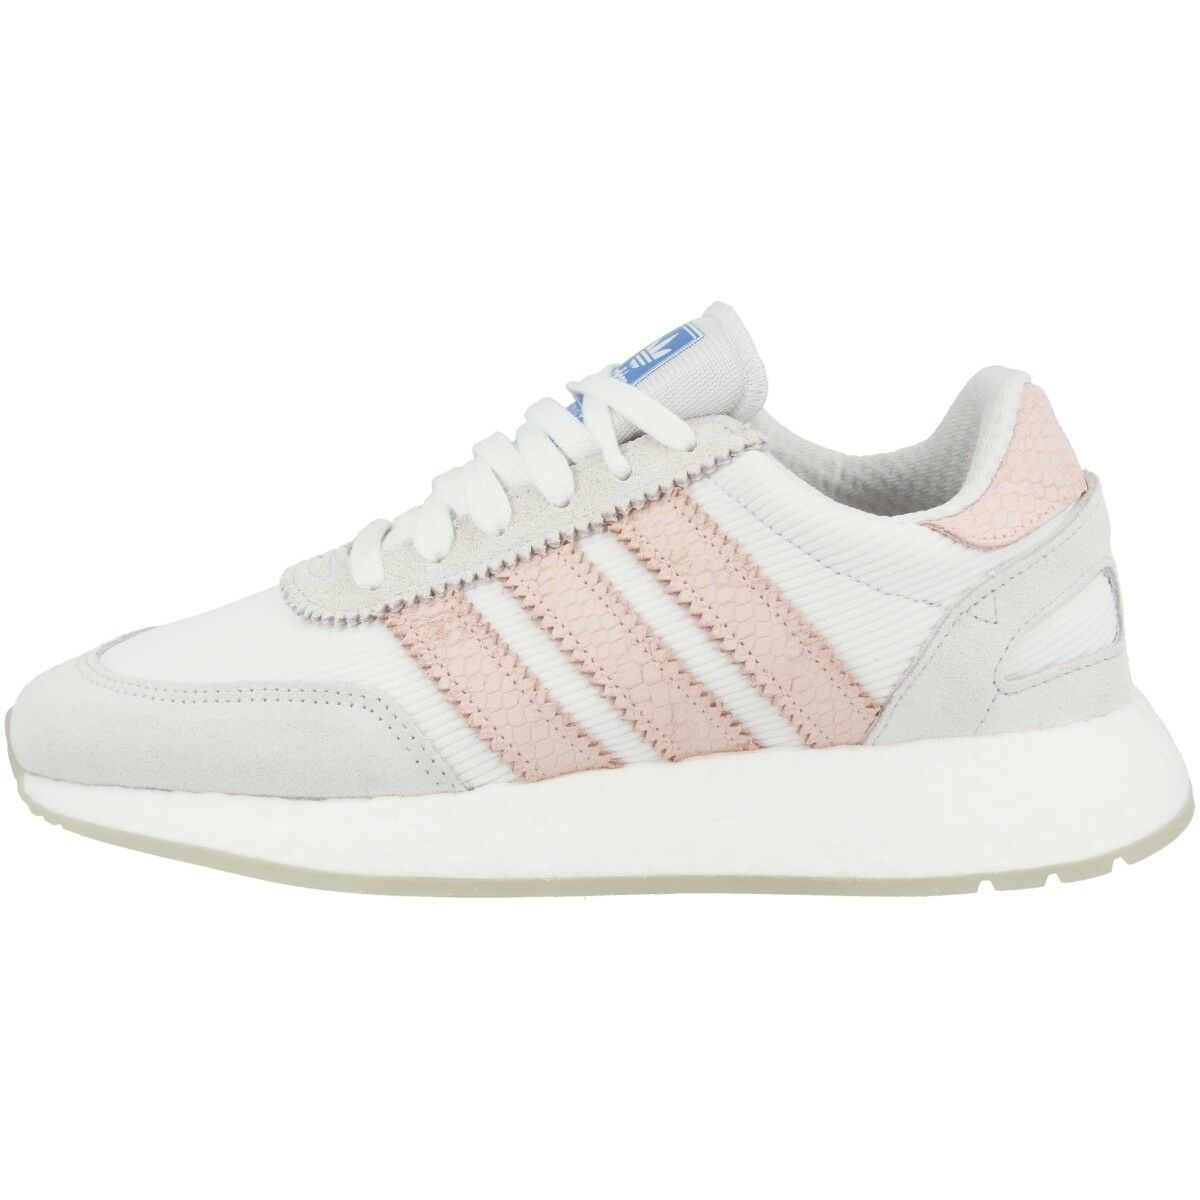 Adidas I-5923 W shoes women Originals Casual shoes da Ginnastica Bianco D97348